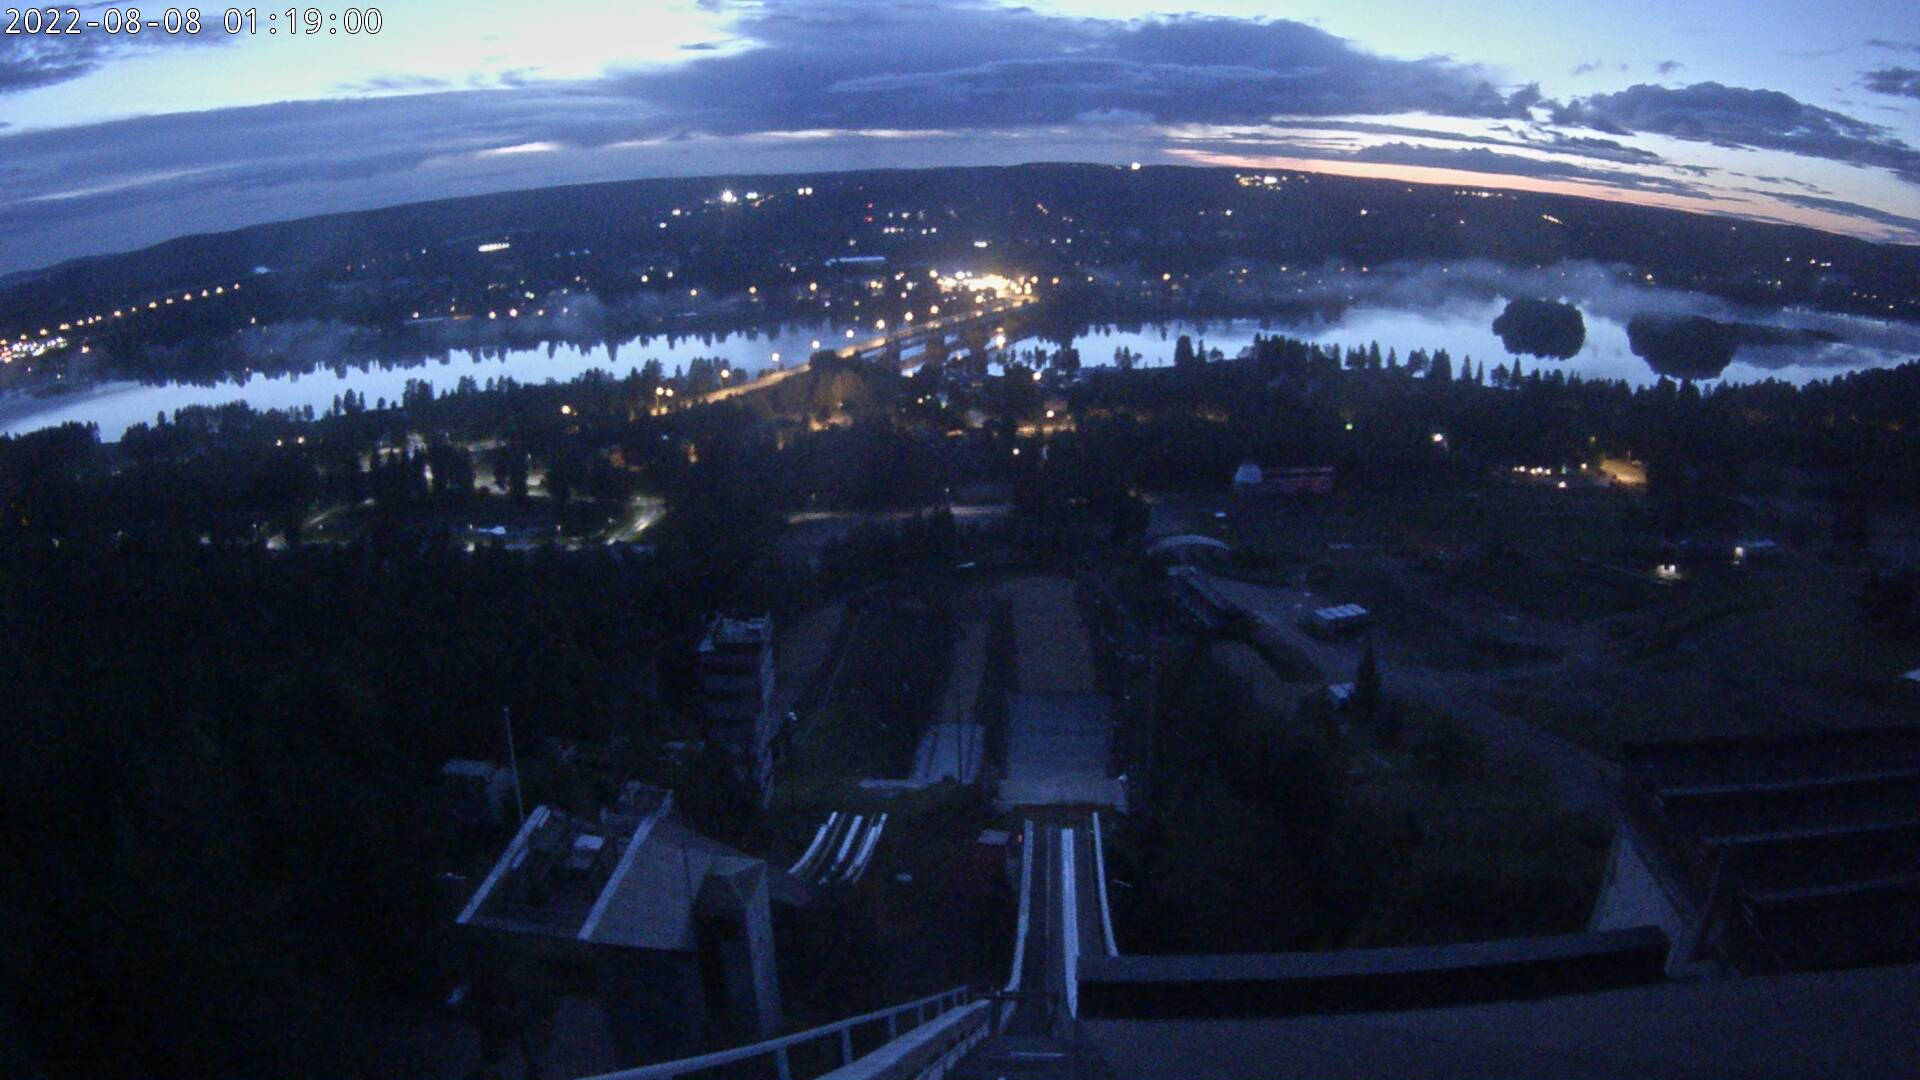 Webcam - Ounasvaara ski jumping hill